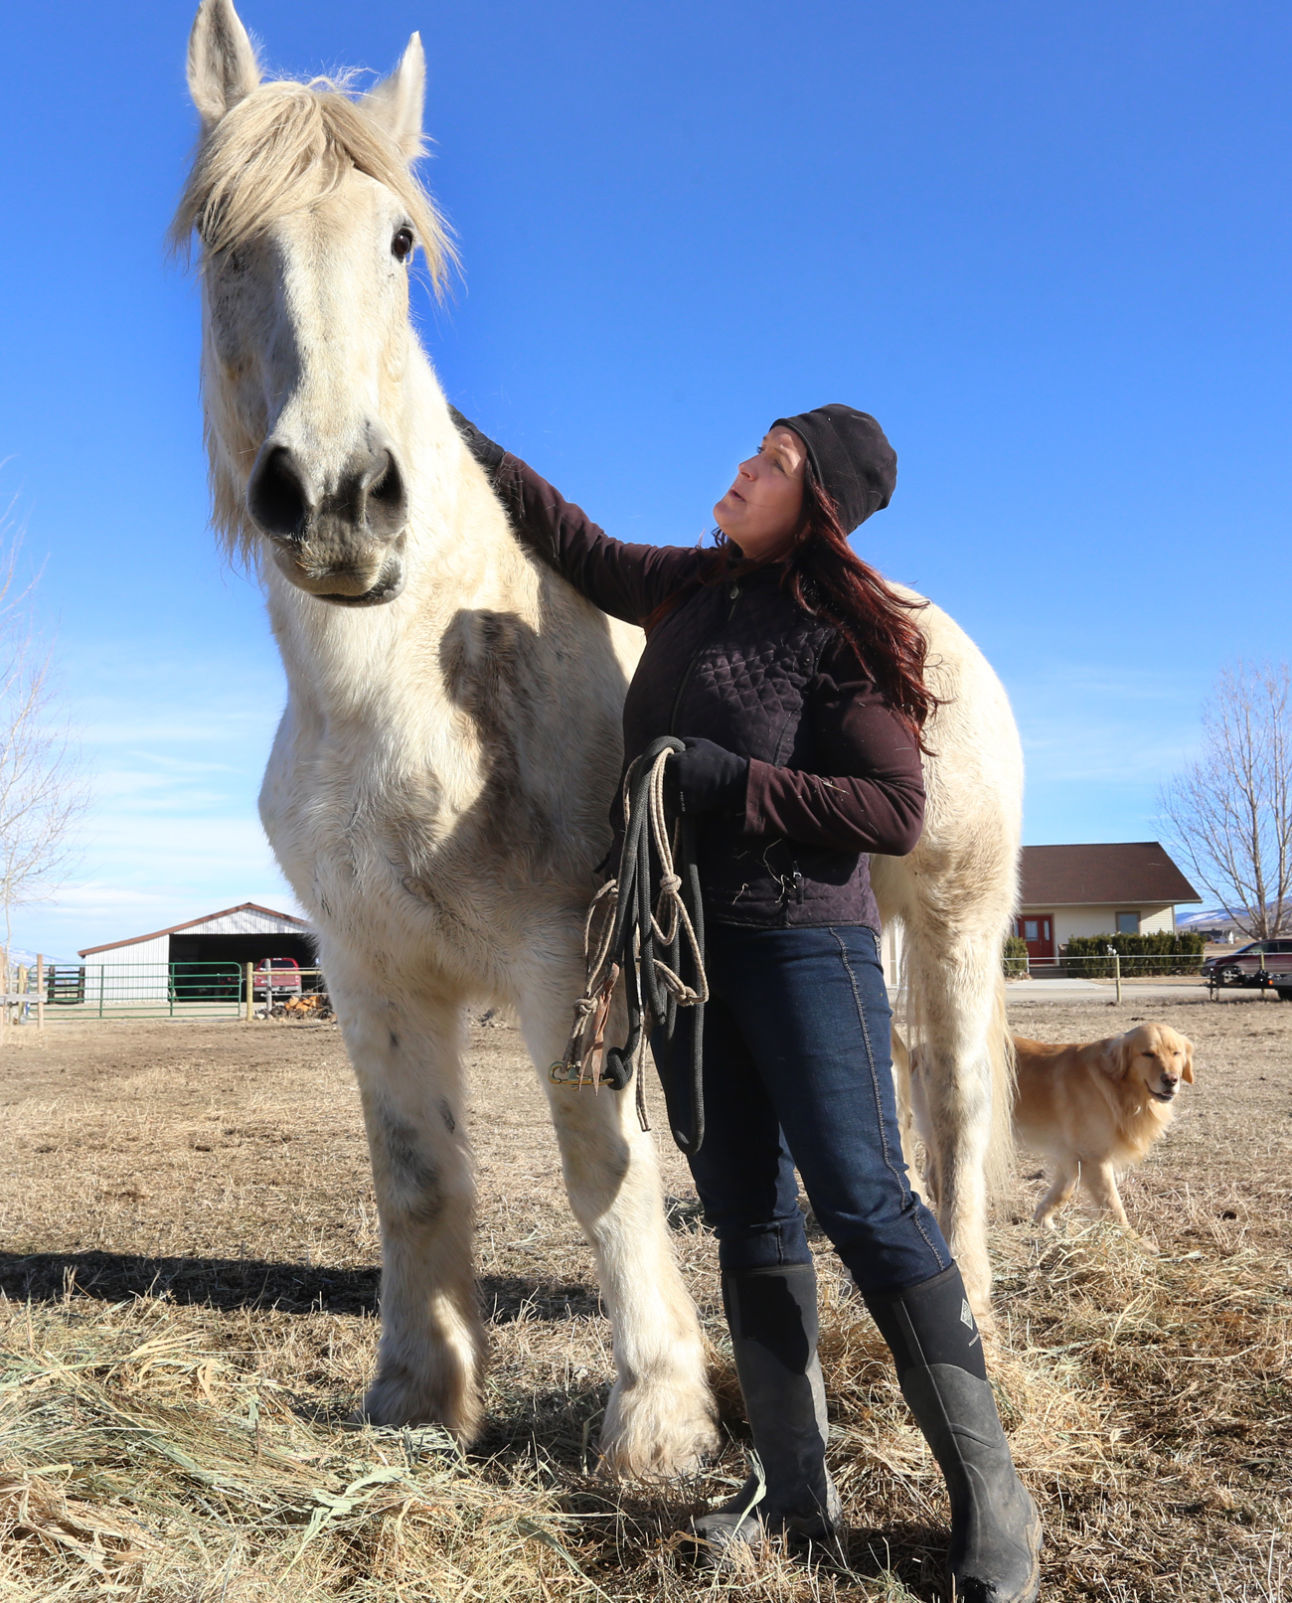 One Horse At A Time Corvallis Woman Rescues Draft Horses Local News Ravallirepublic Com